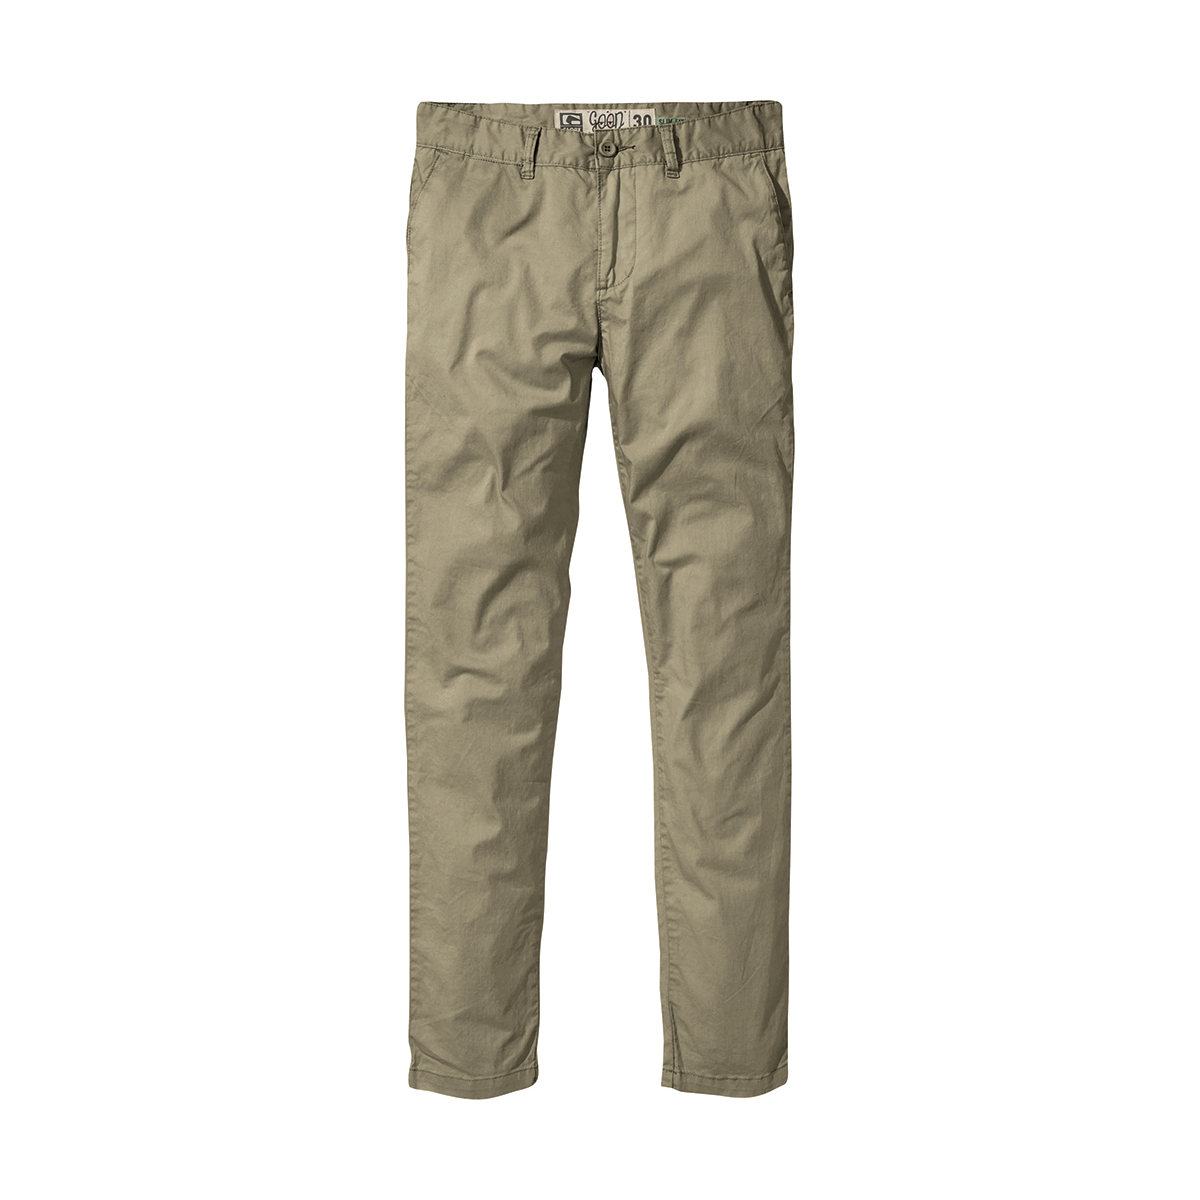 GLOBE Goodstock Chino Mens Pants